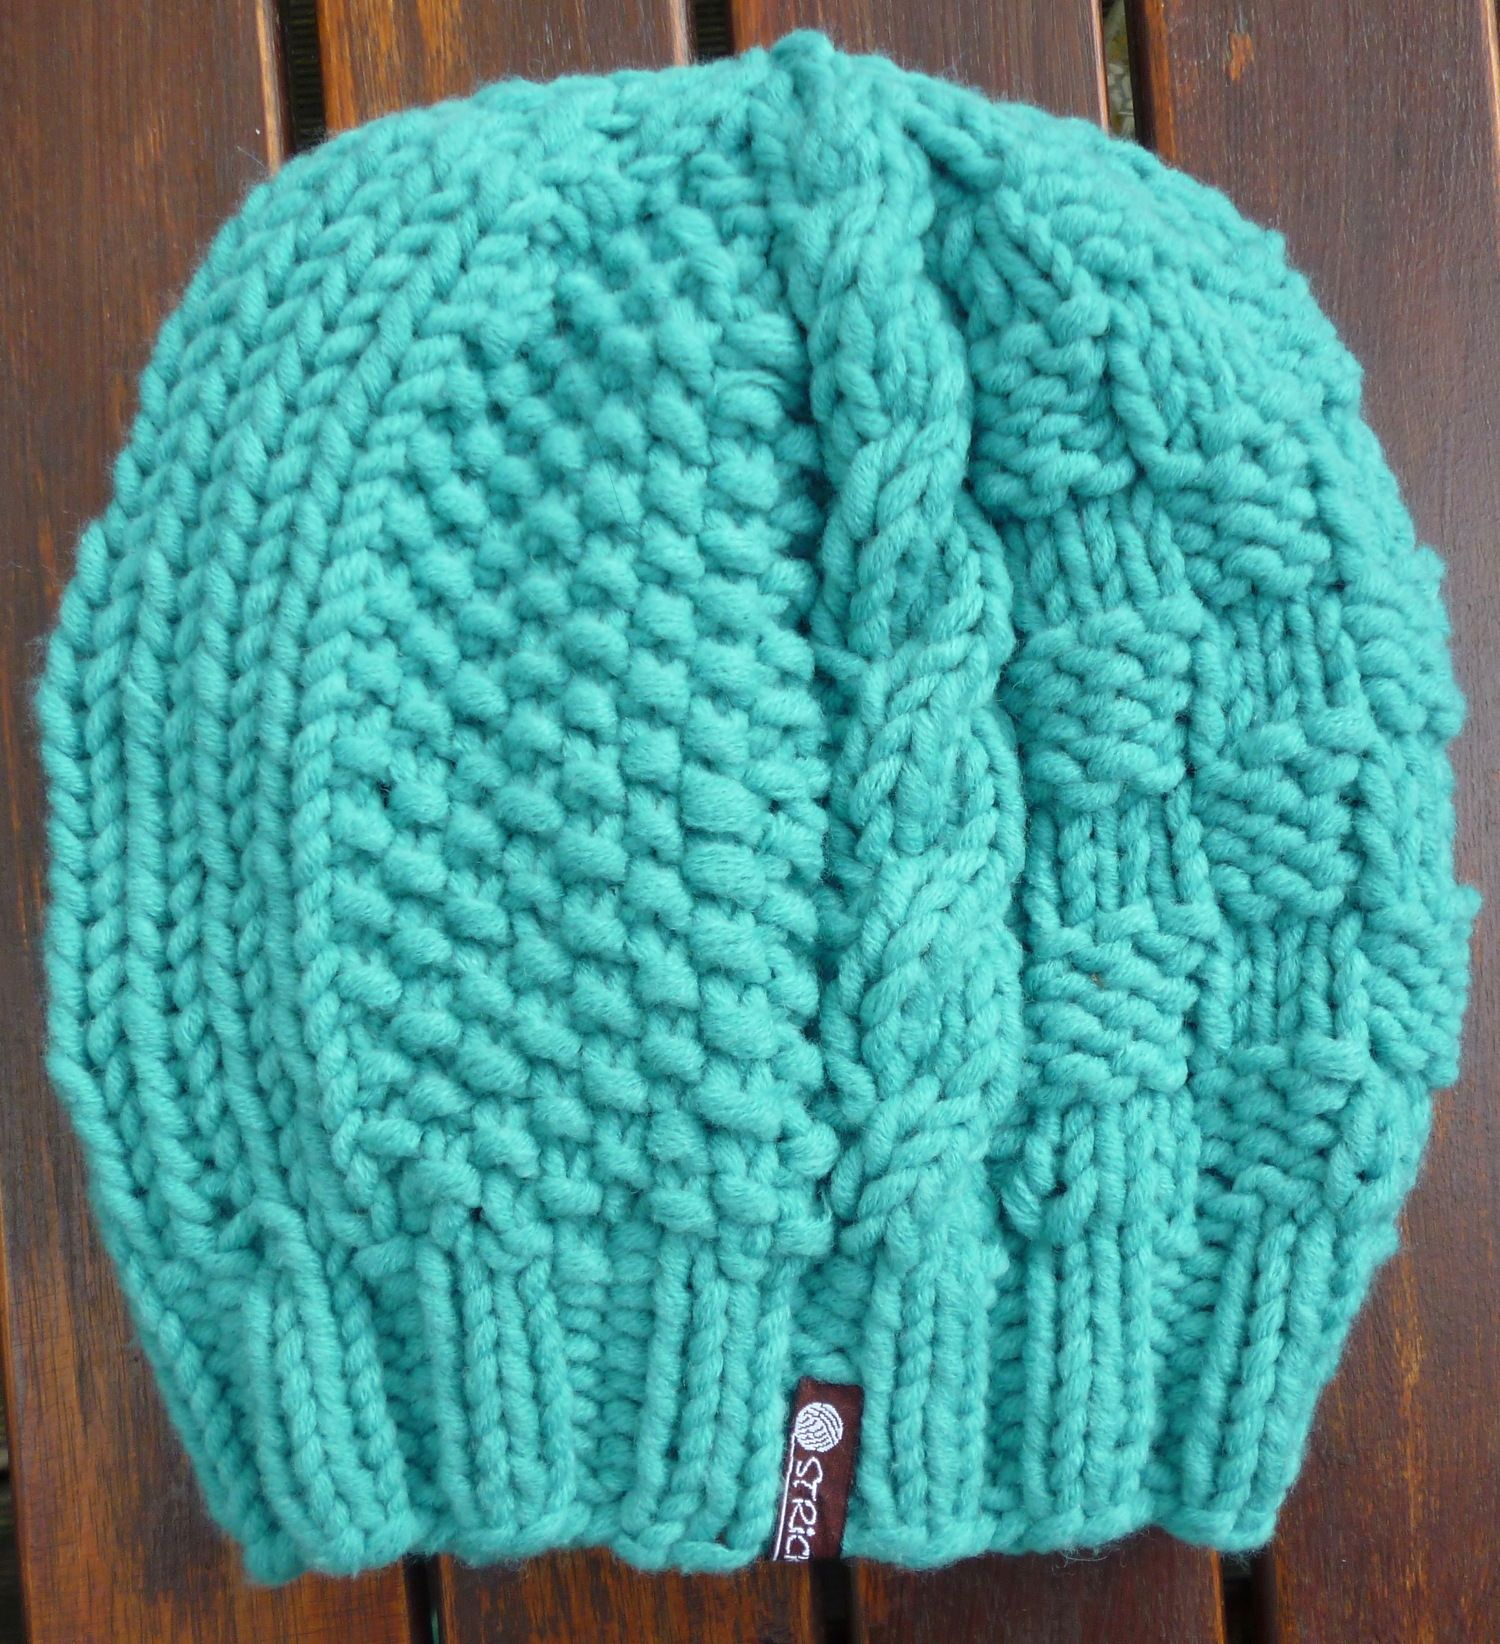 Enchanting Earflap Hut Strickmuster Frei Composition - Decke ...